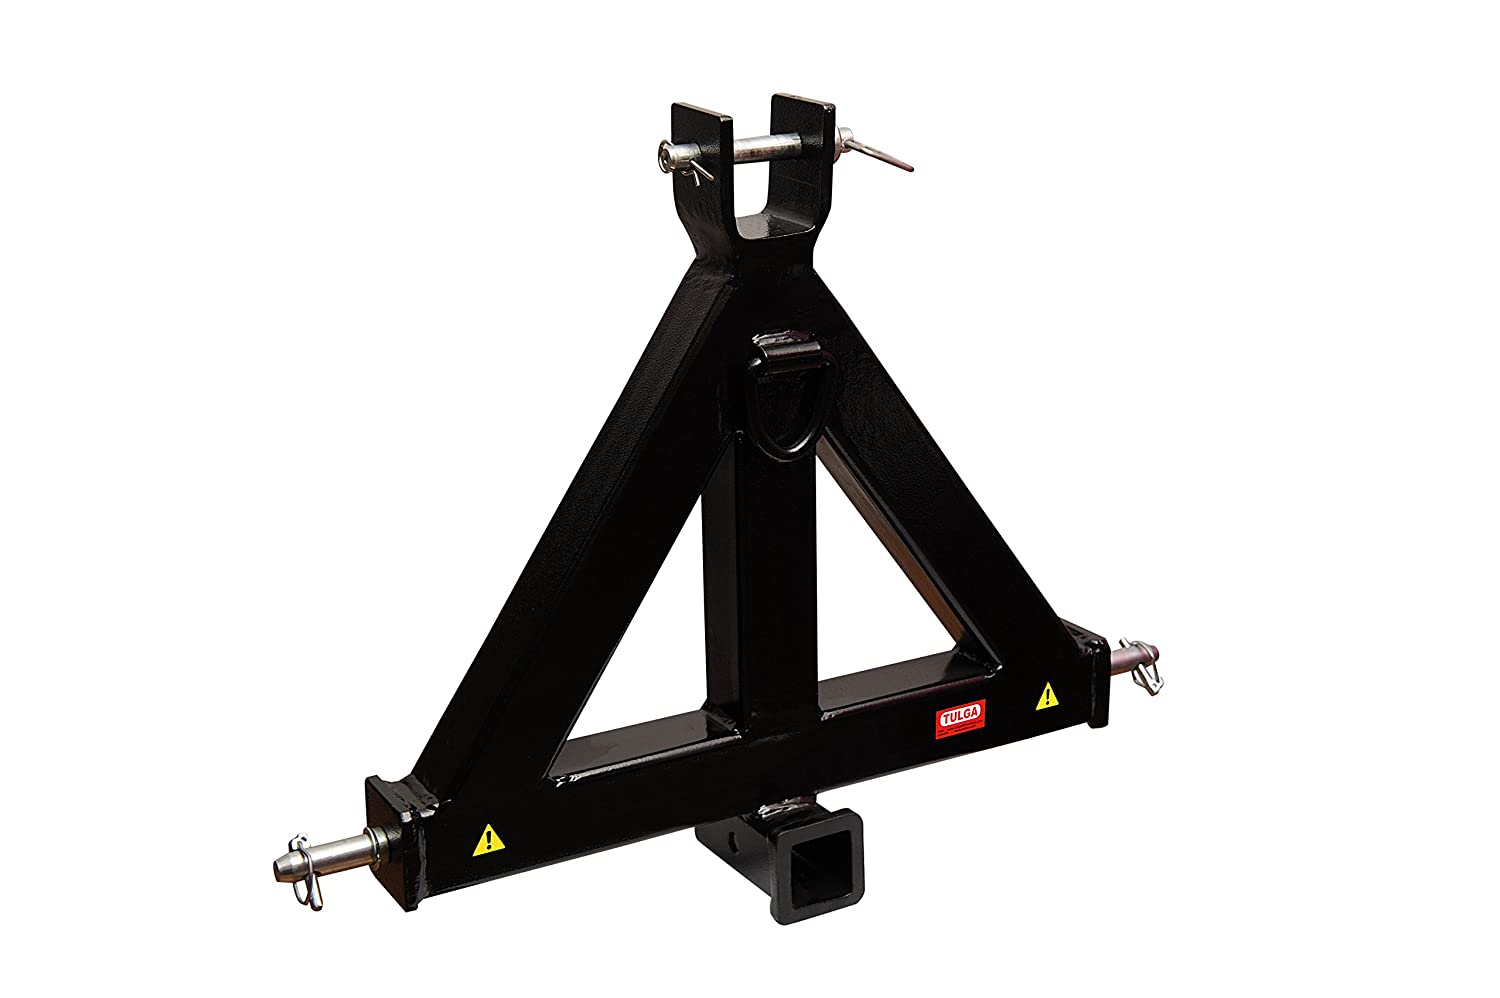 SCITOO Heavy Duty 3 Point 2 inch Receiver Tow Trailer Hitch Category 1 Tractor Drawbar Pull